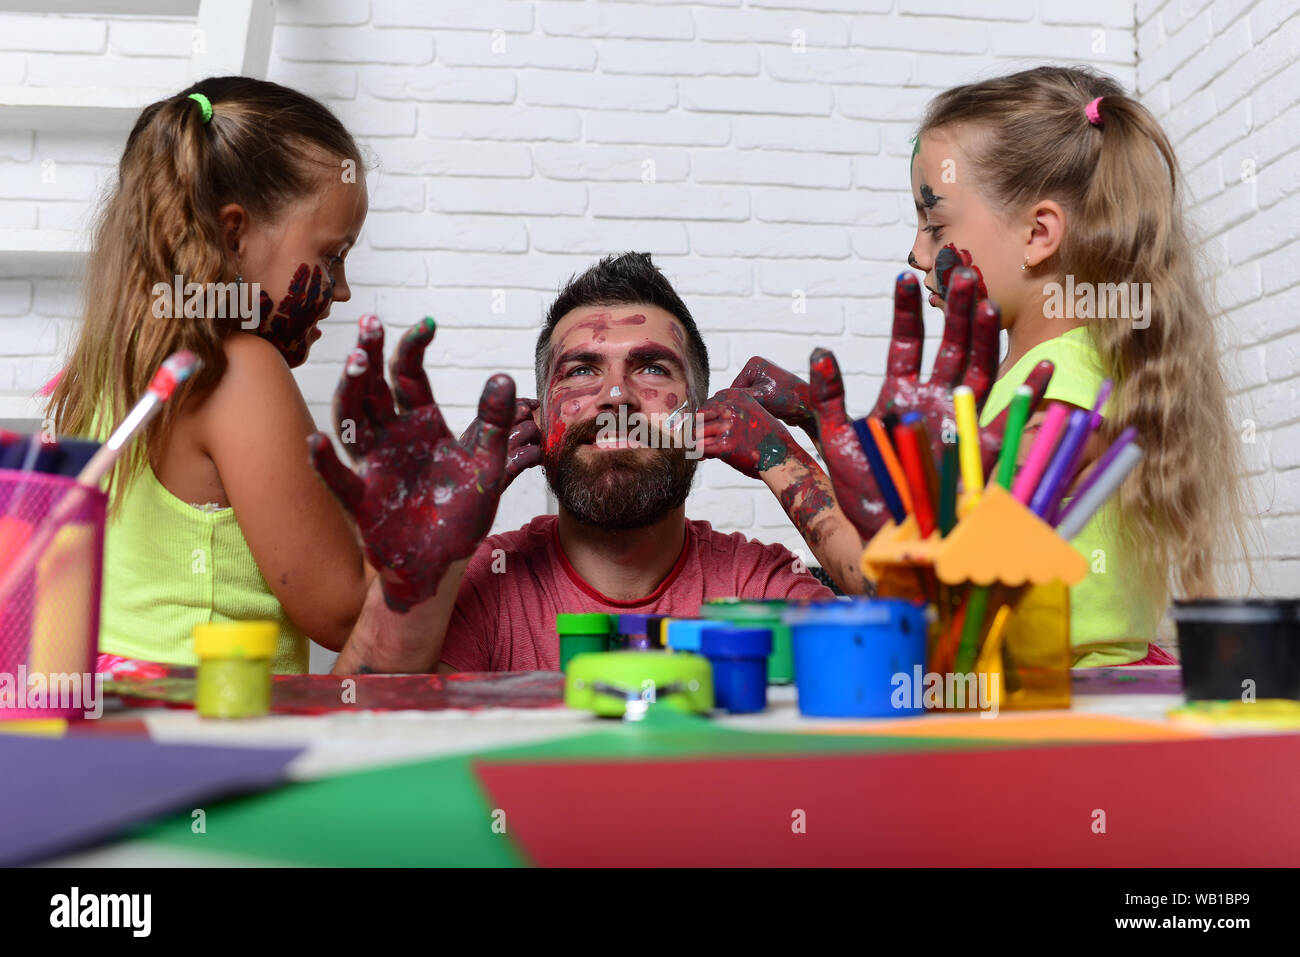 Fathers Day And Family Concept Body Art And Painting Daughters And Dad With Painted Hands Creativity And Imagination Girls Drawing On Man Face Ski Stock Photo Alamy